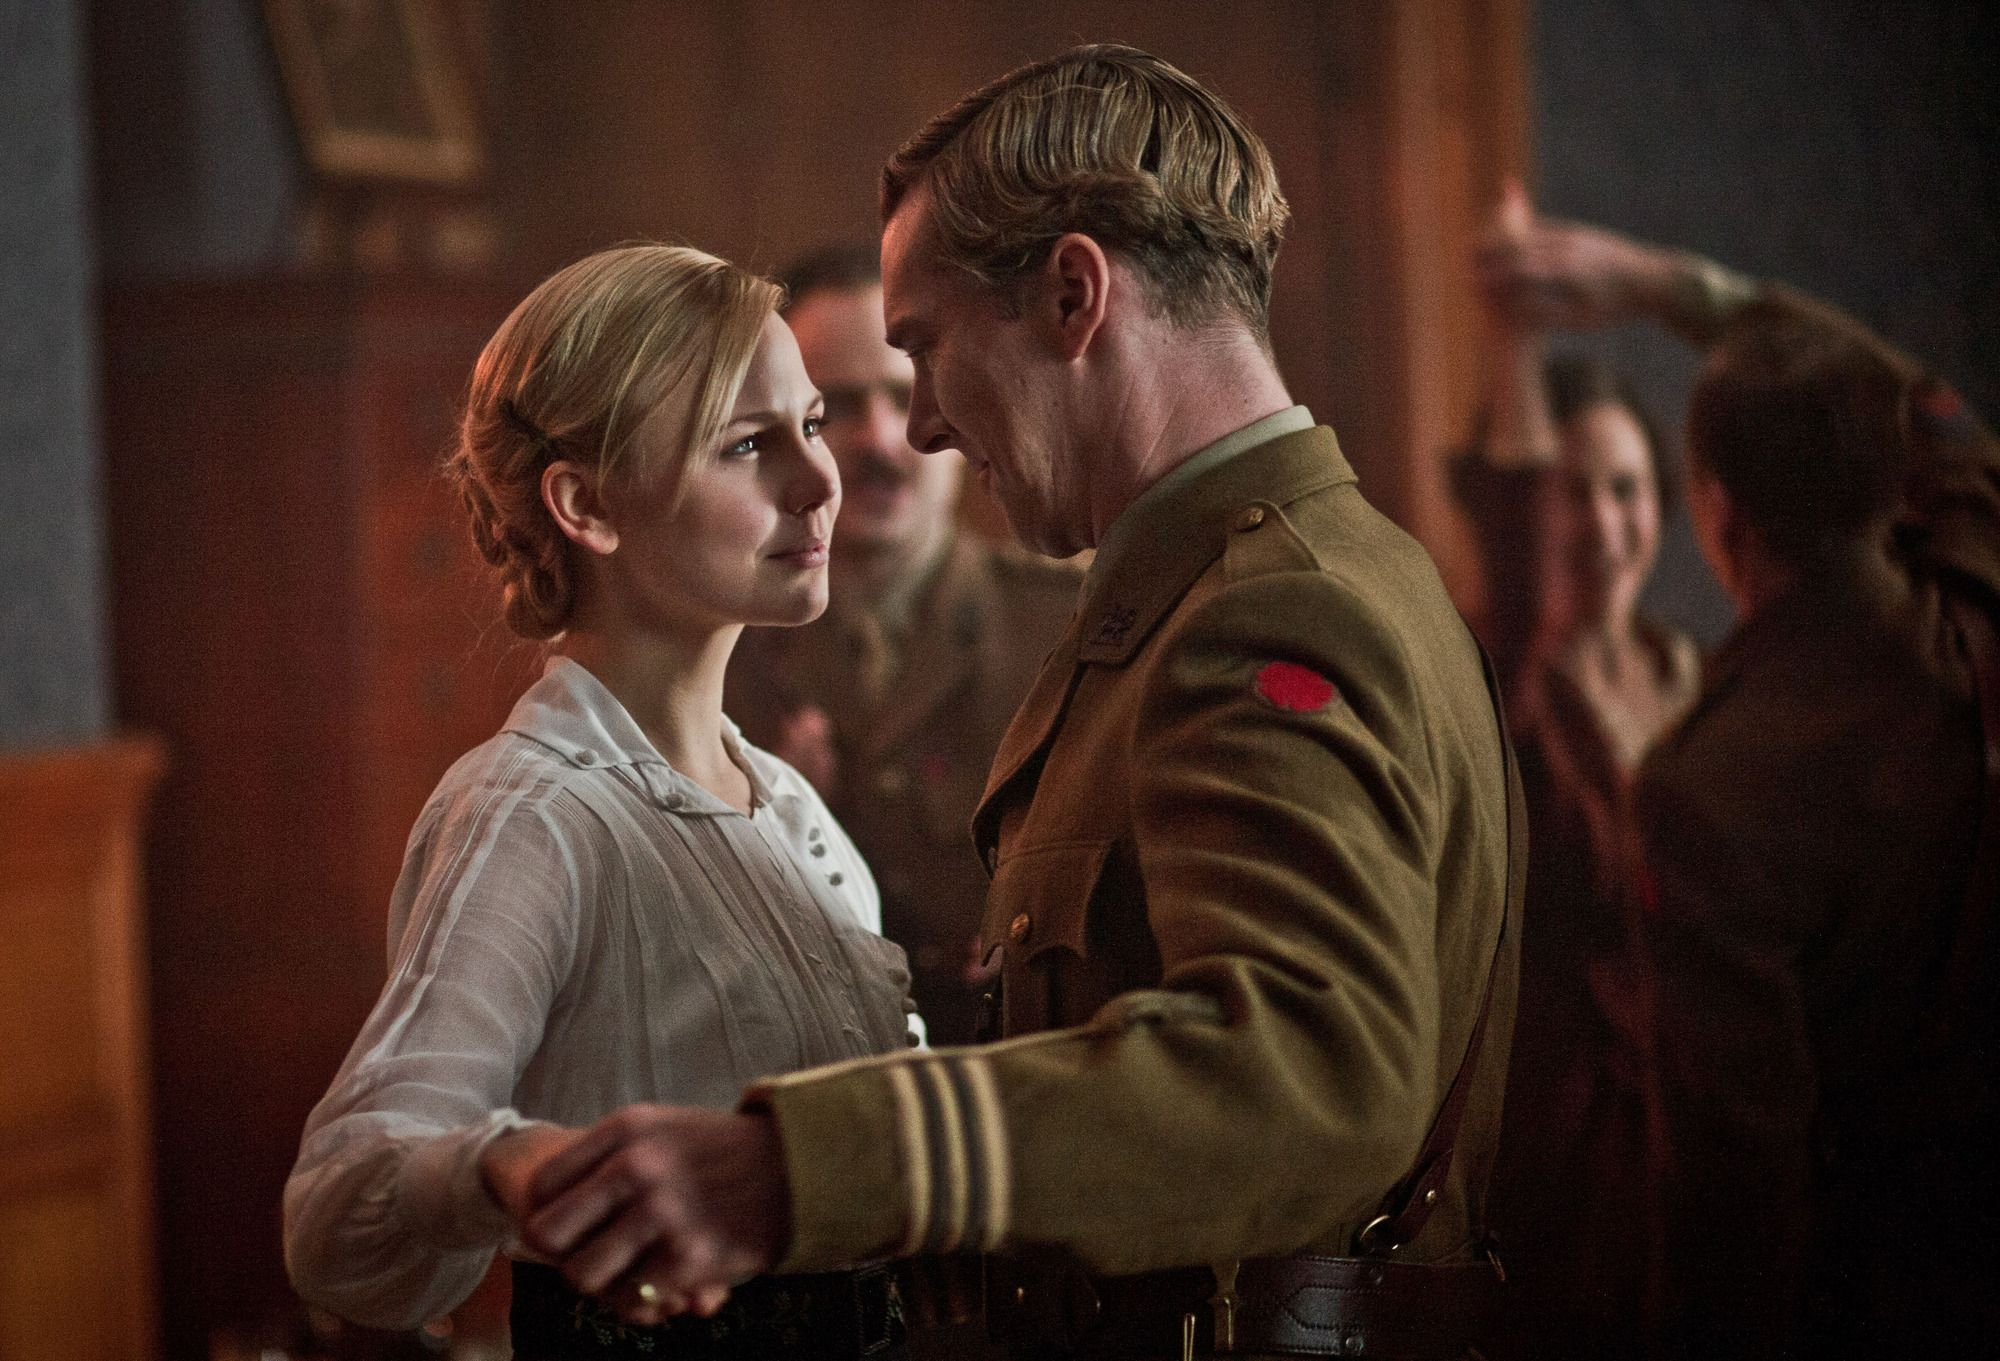 Valentine (Adelaide Clemens) and Christopher (Benedict Cumberbatch) get their happy ending